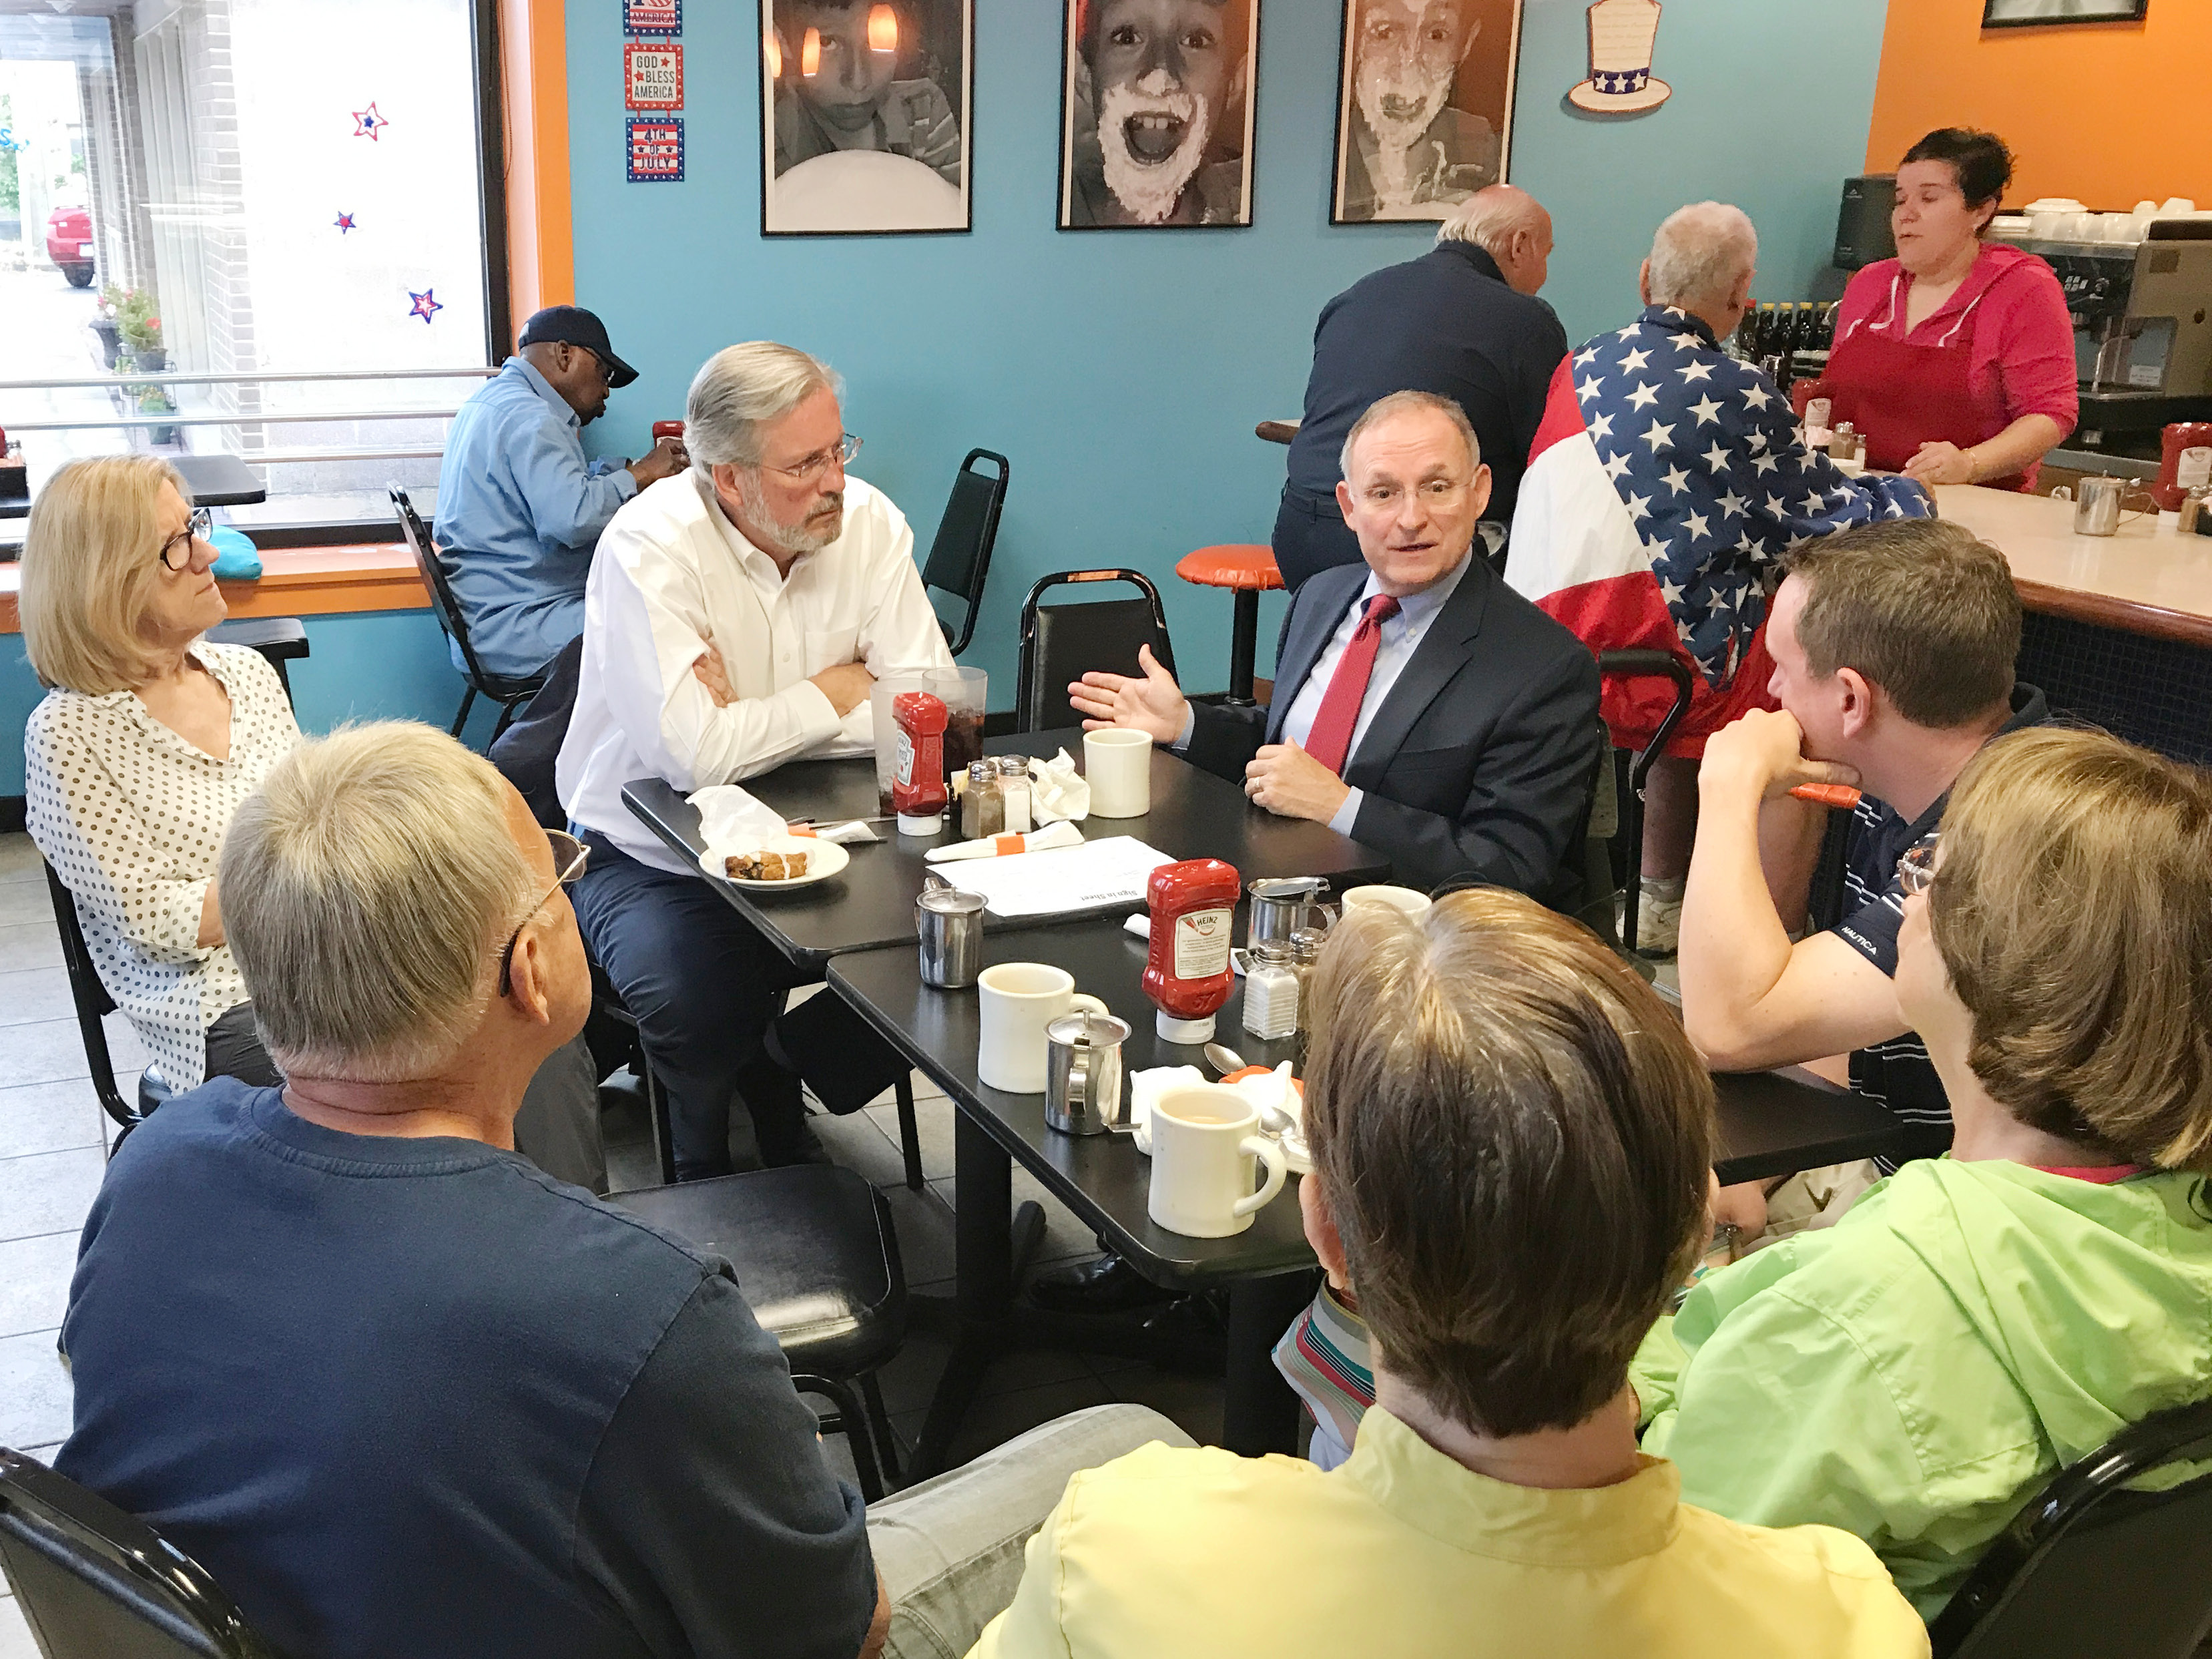 Rep. William Petit (center left) and Sen. Henri Martin (center right) met with Plainville constituents during a recent coffee hour at Bolo Bakers.